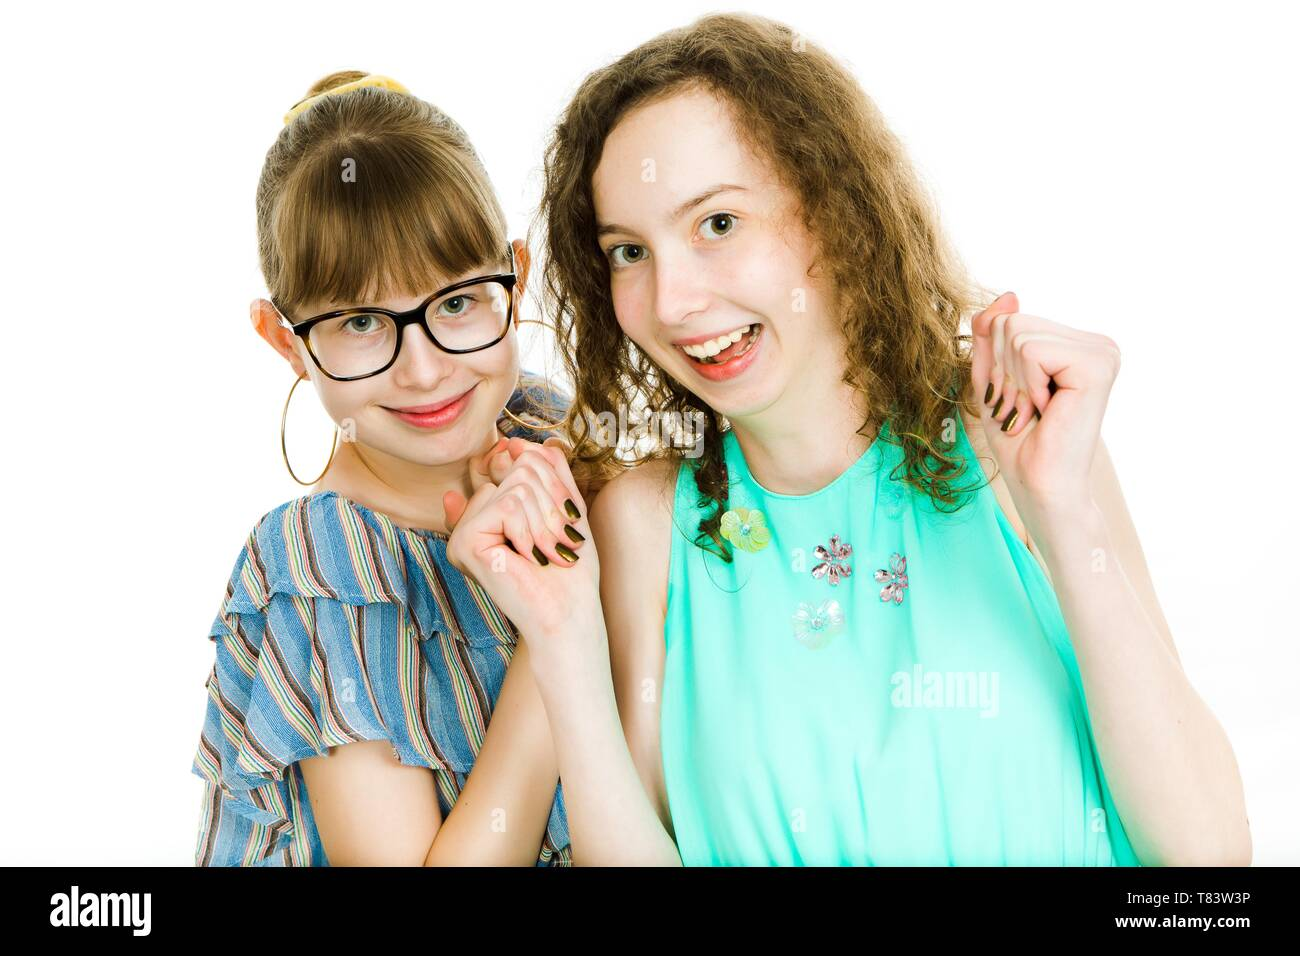 Two teenaged sisters posing together - shows happiness are smiling - white background Stock Photo